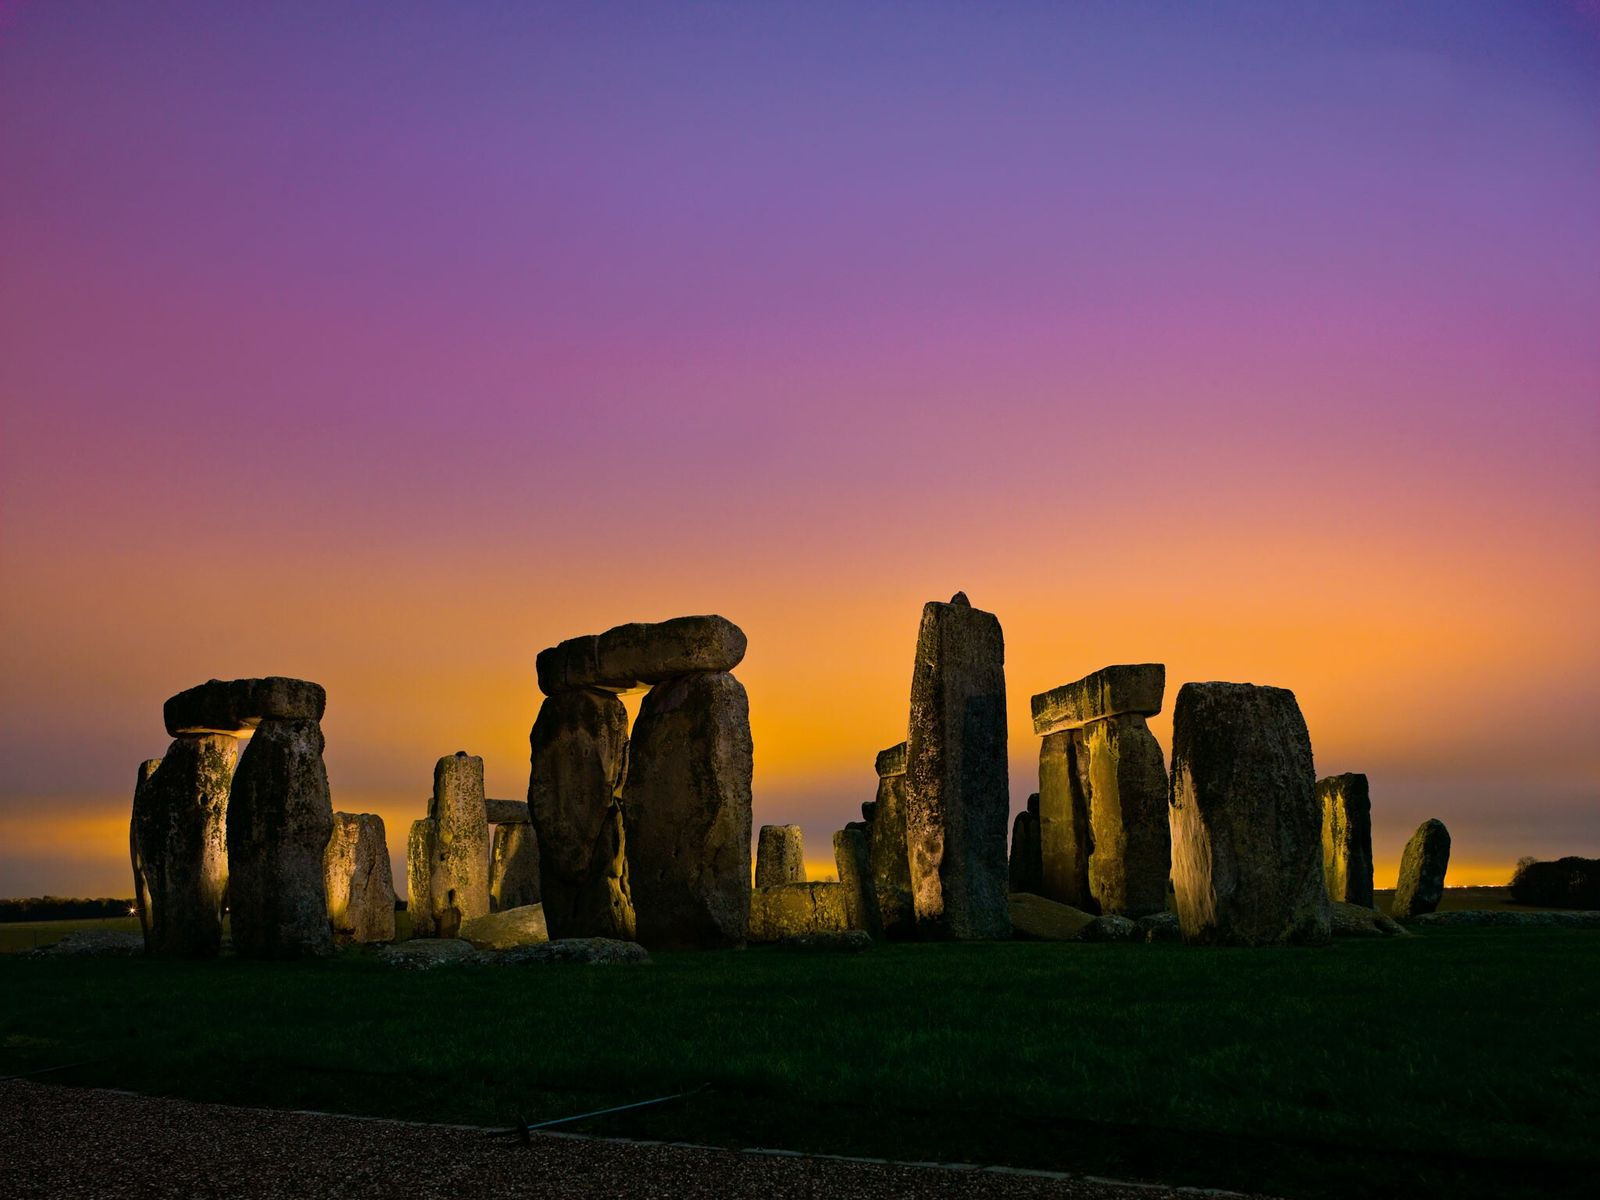 Stonehenge, completed some 4,600 years ago, may be fashioned in part from elements of older megalithic ...